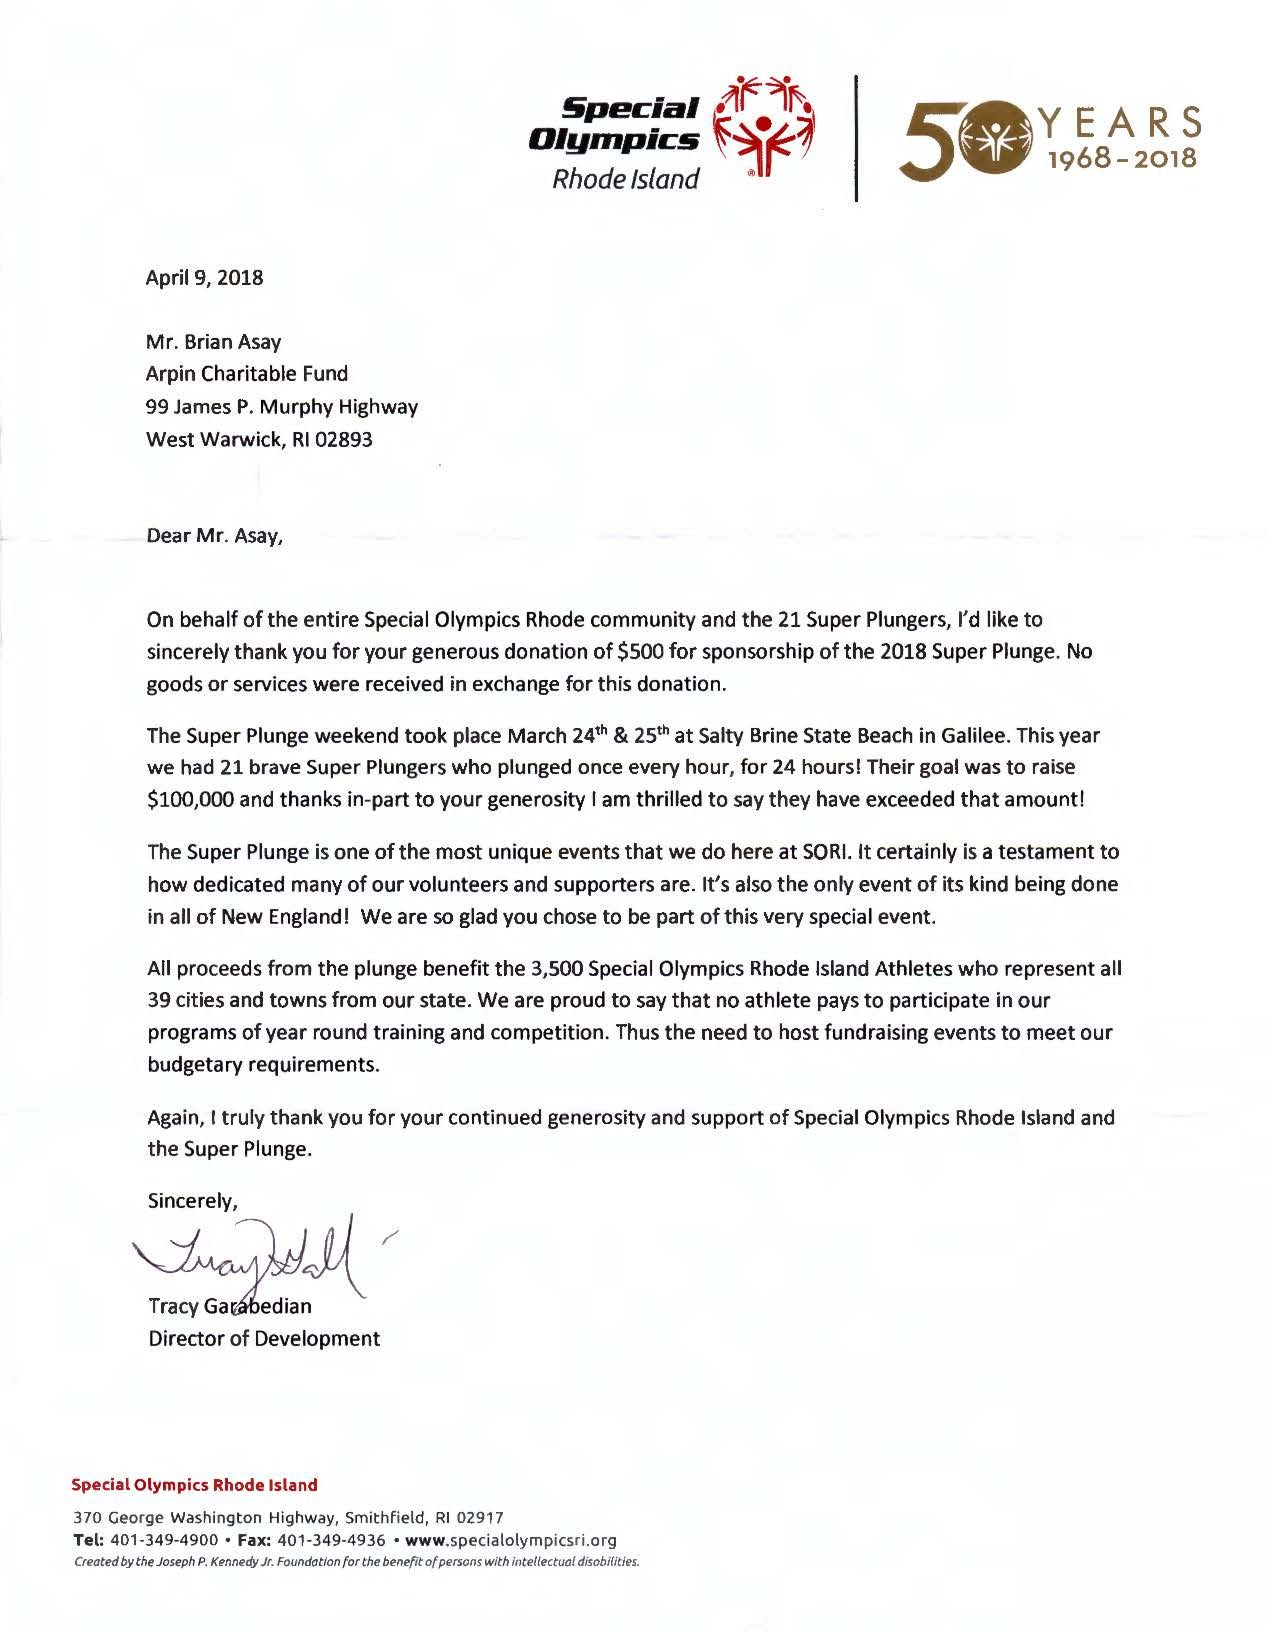 Thank You Letter From The Special Olympics Rhode Island For Our